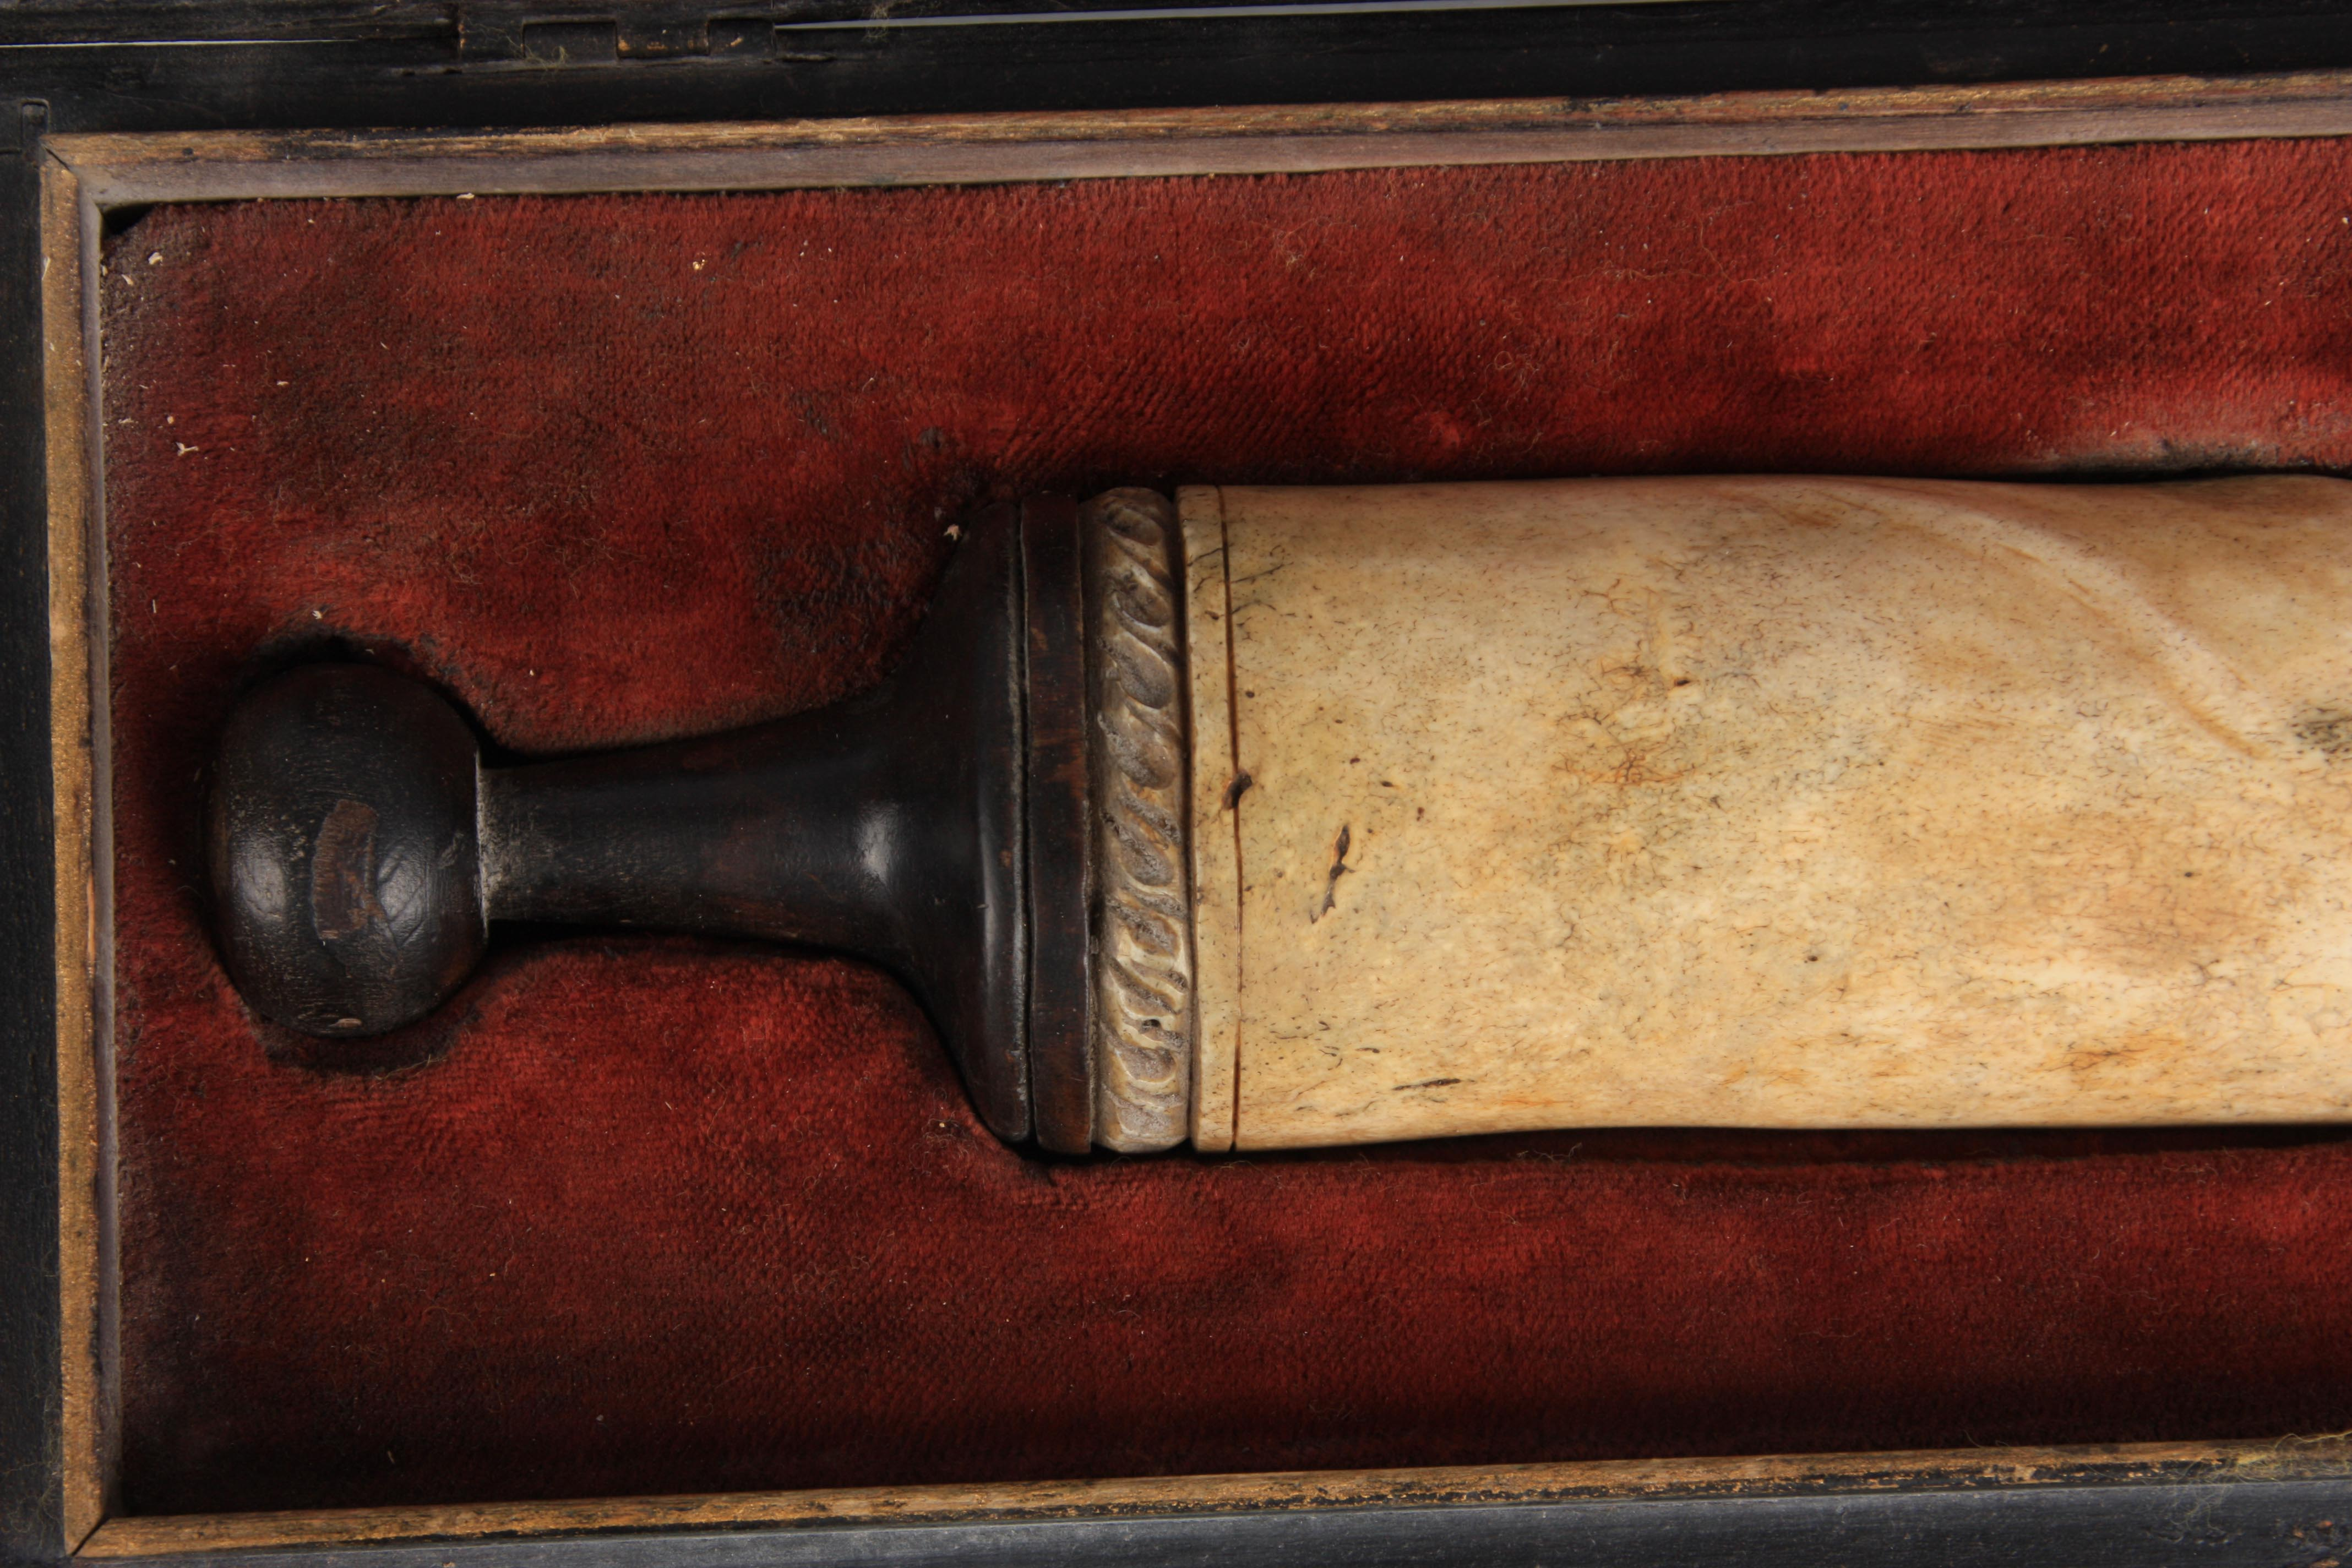 A RARE 19TH CENTURY CARVED BONE EROTIC SCULPTURE modelled as a phallus with turned wood handle to - Image 11 of 16